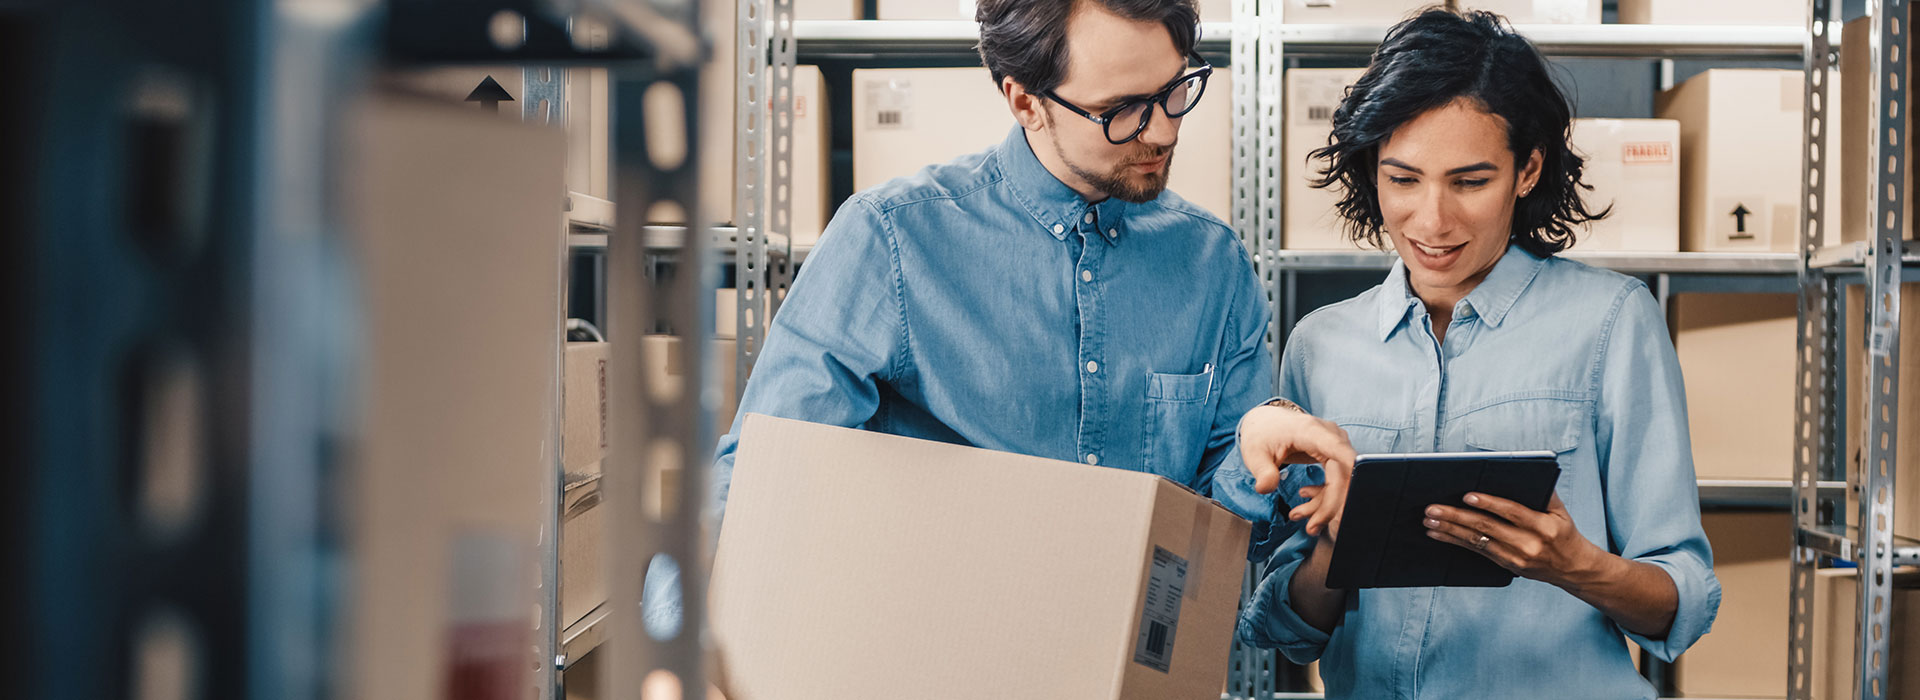 Warehousing and distribution employees in a warehouse setting check the status of a package delivery